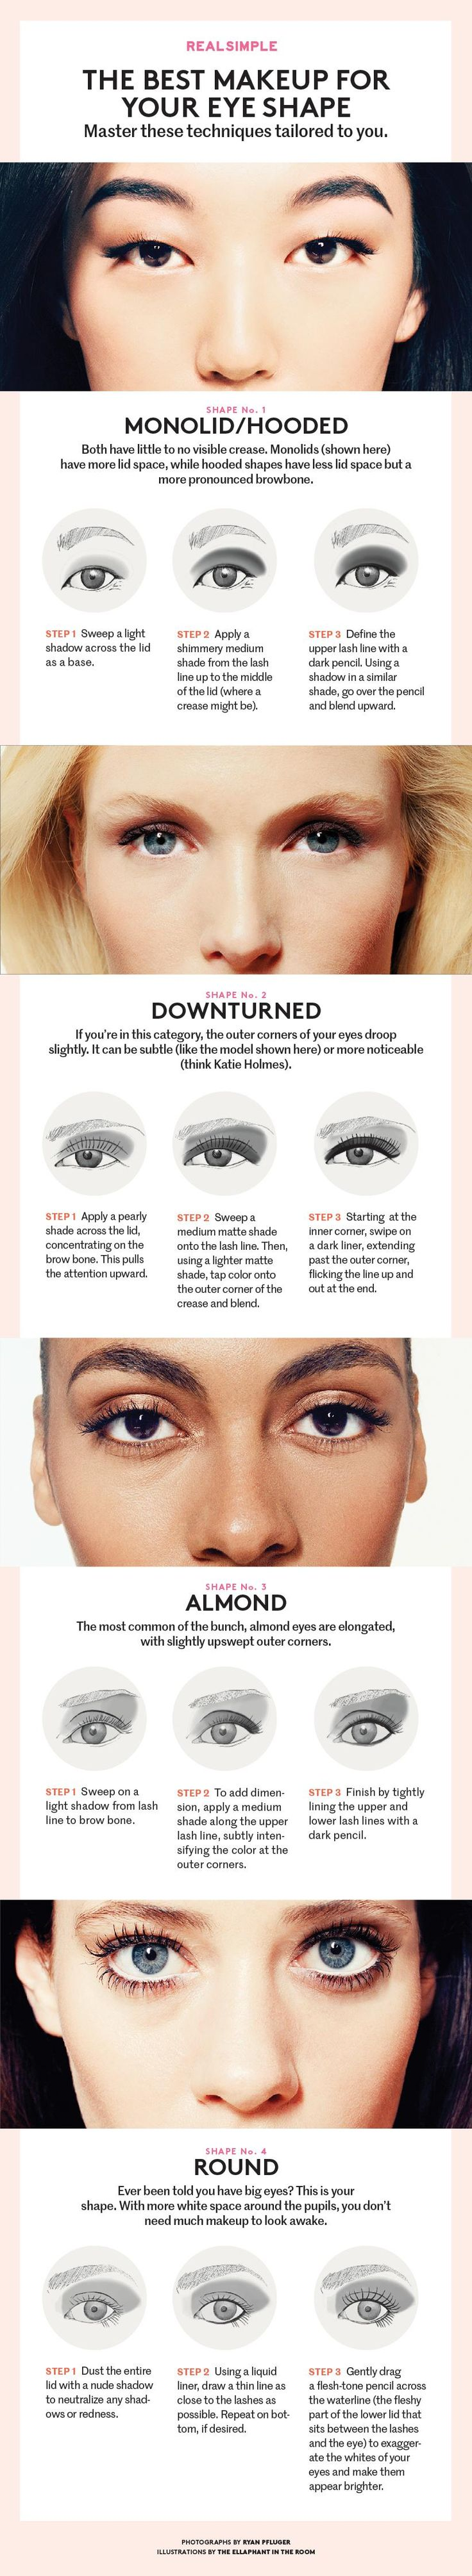 The best eye makeup for every eye shape.